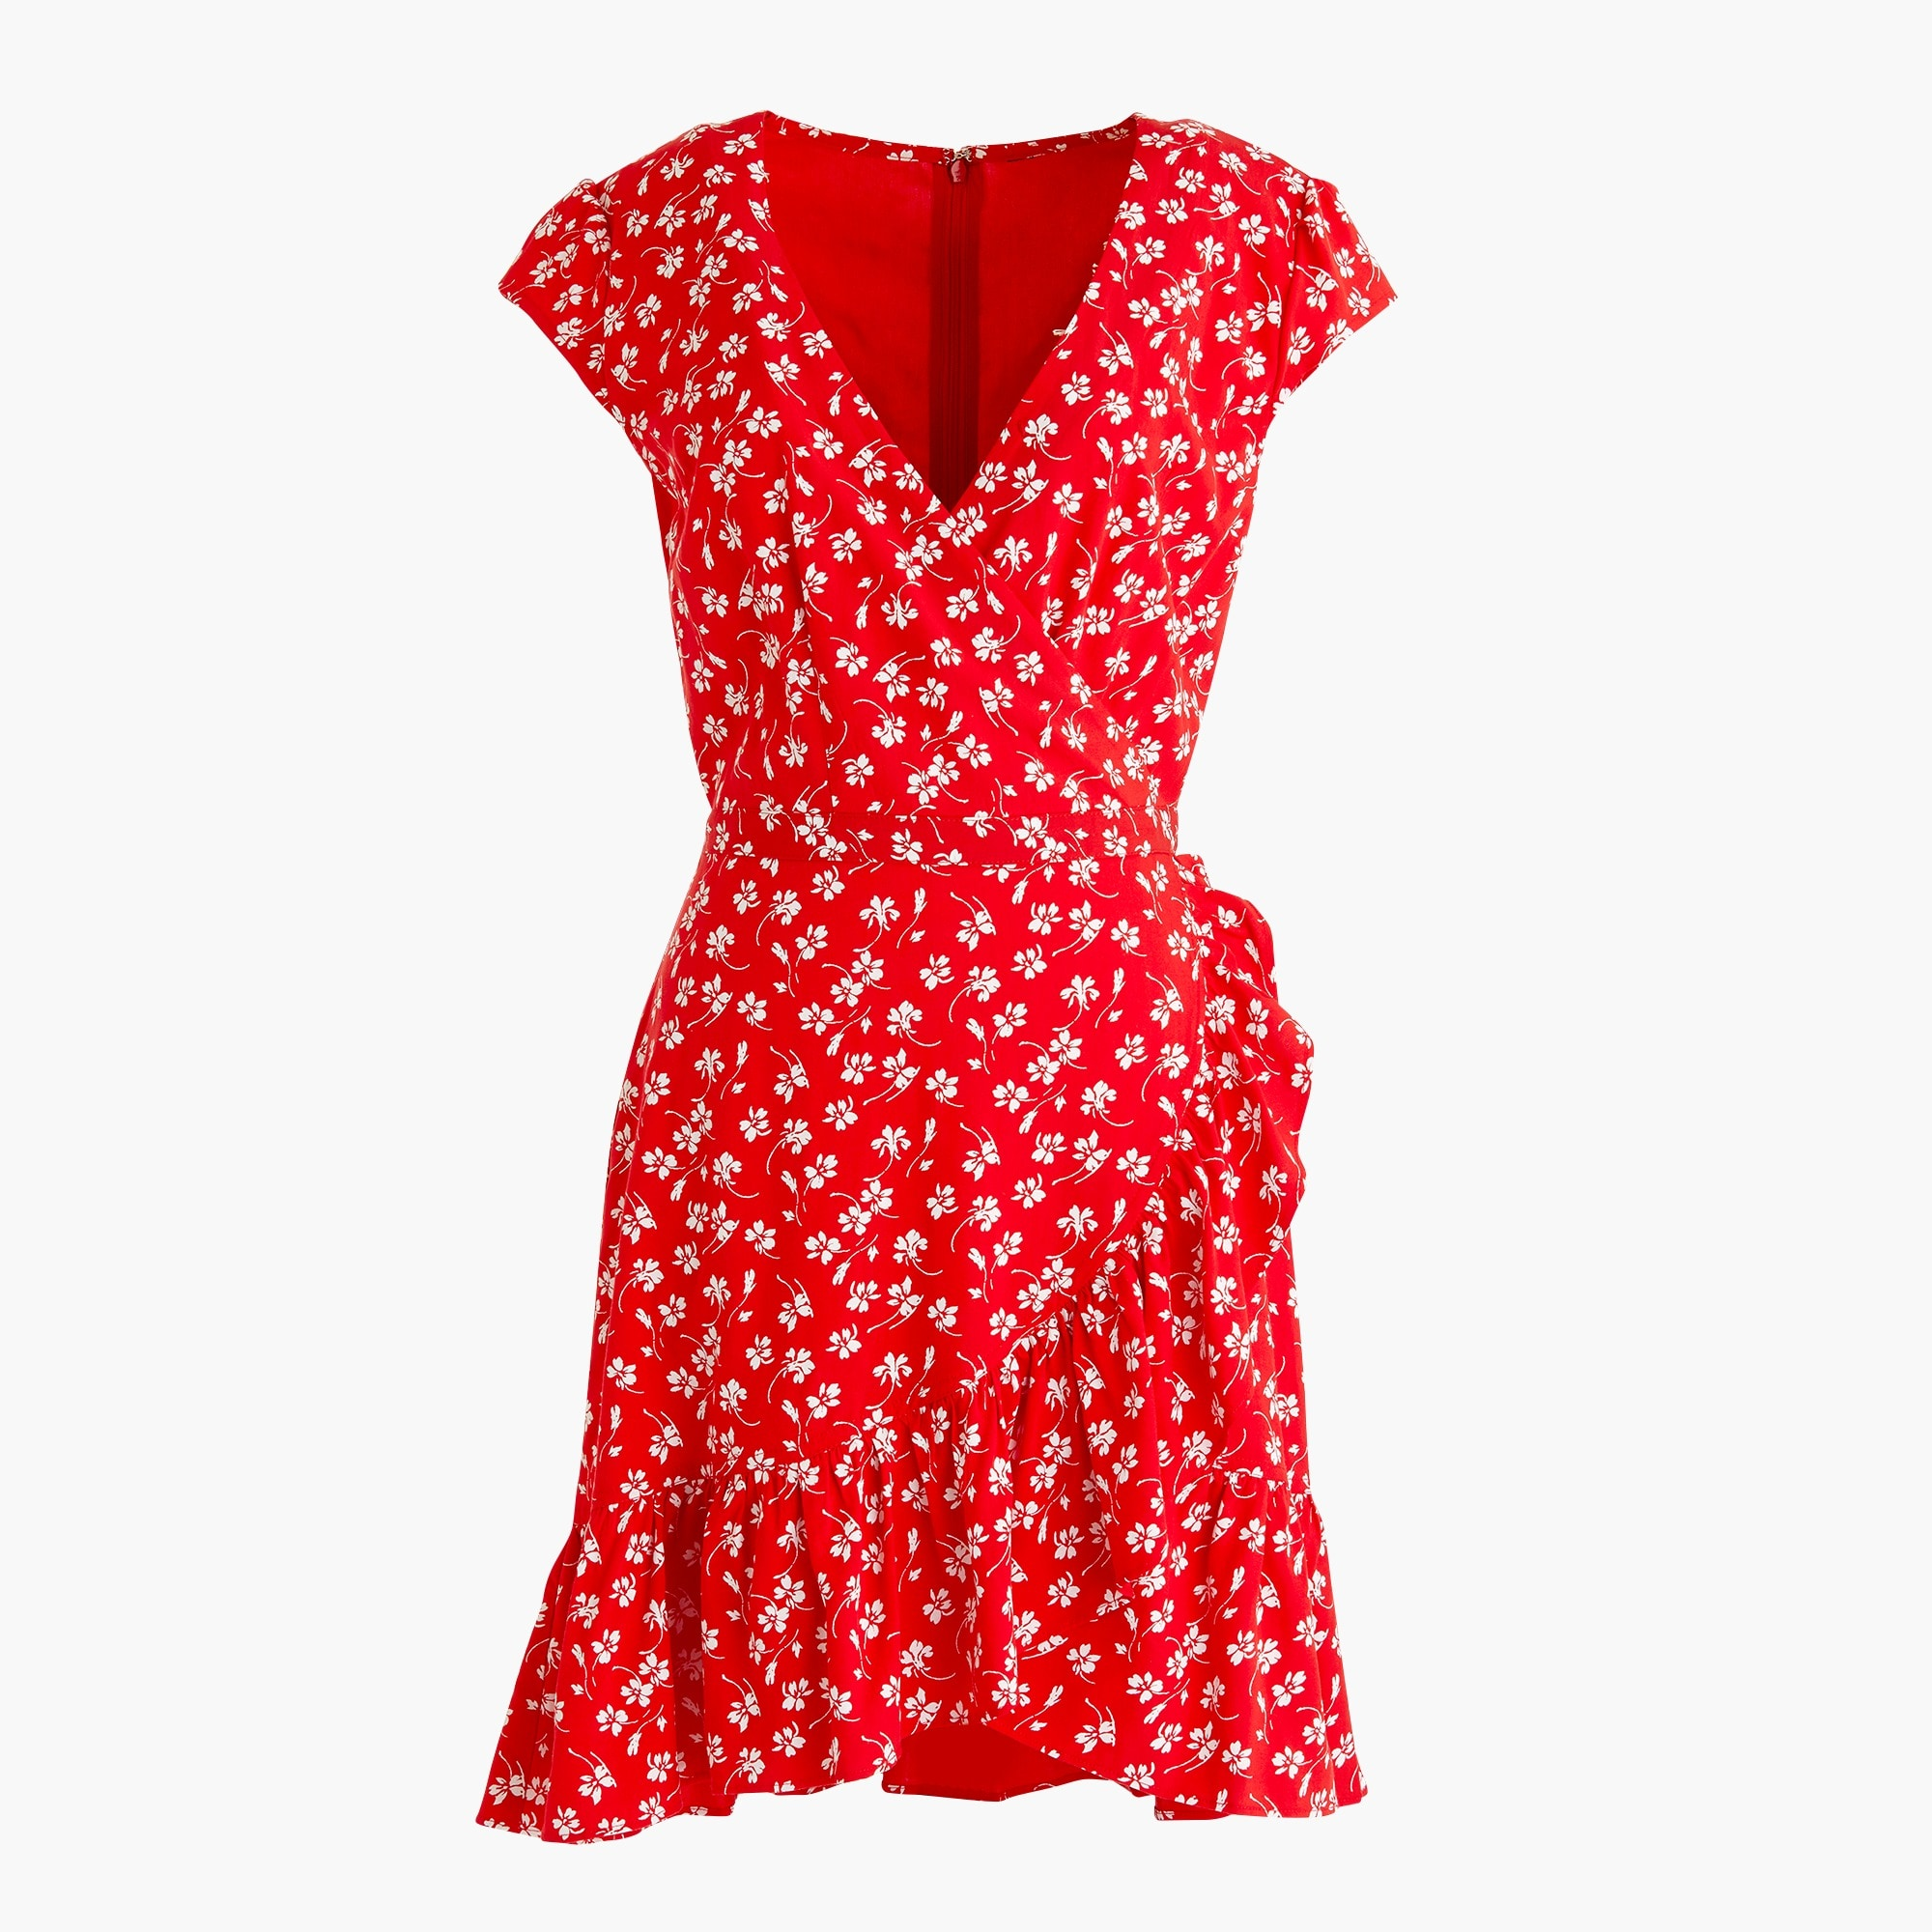 Image 1 for J.Crew Mercantile faux-wrap mini dress in fresh daisies